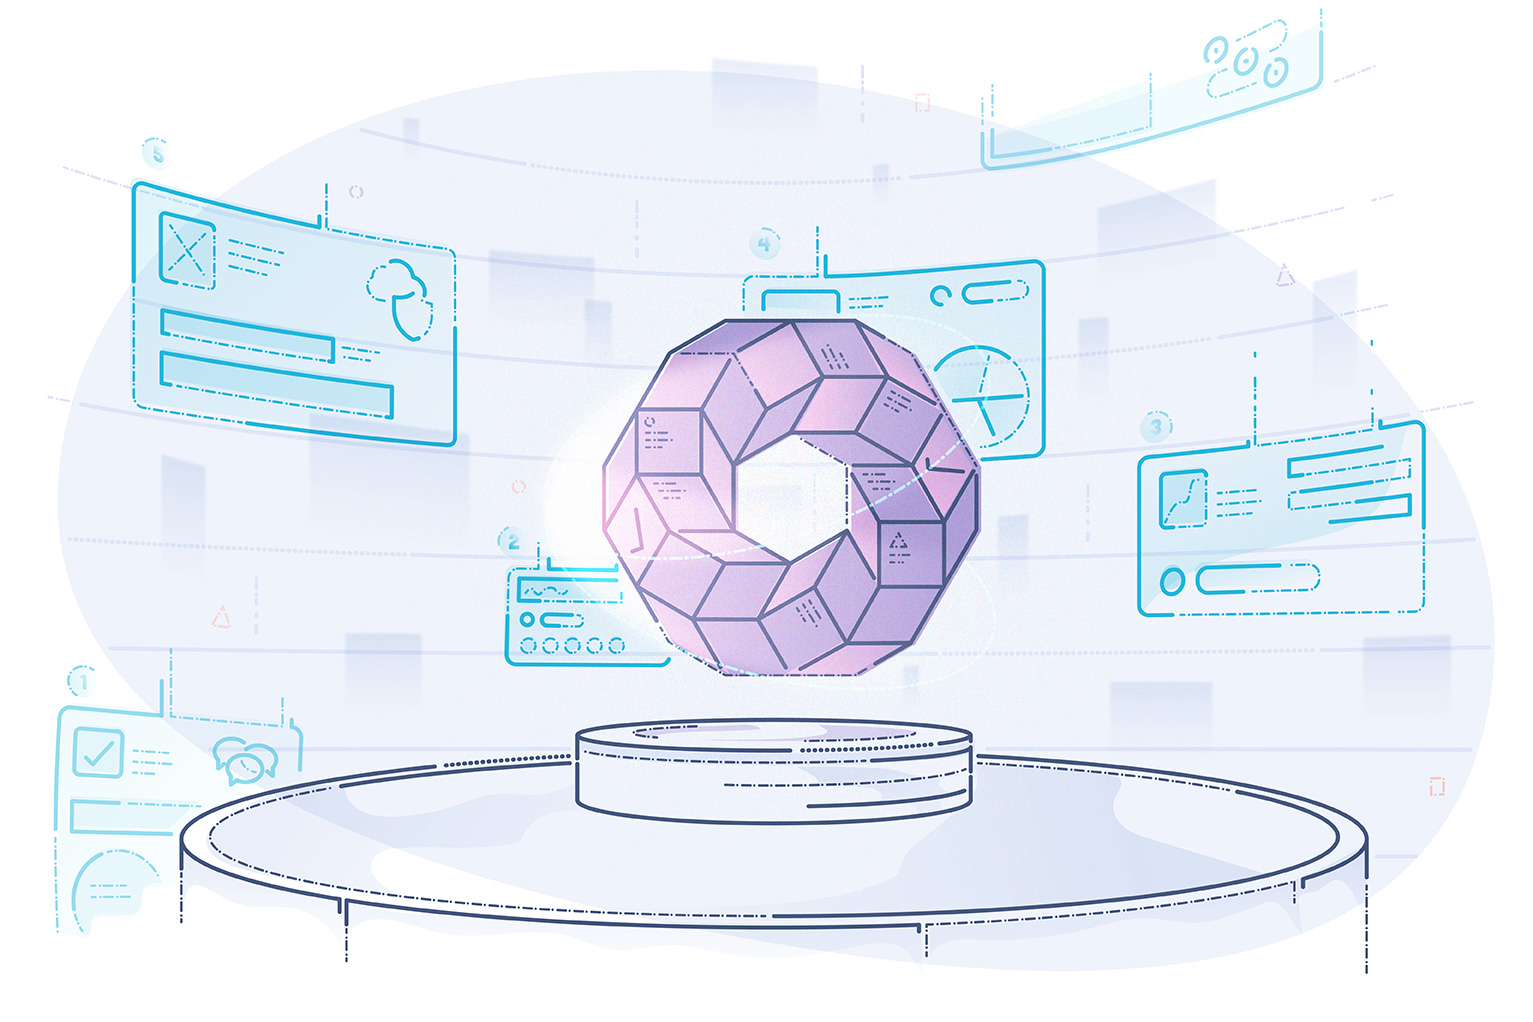 Saas Payment obstacles - abstract illustration of sphere with parts hovering in technology heavy environment